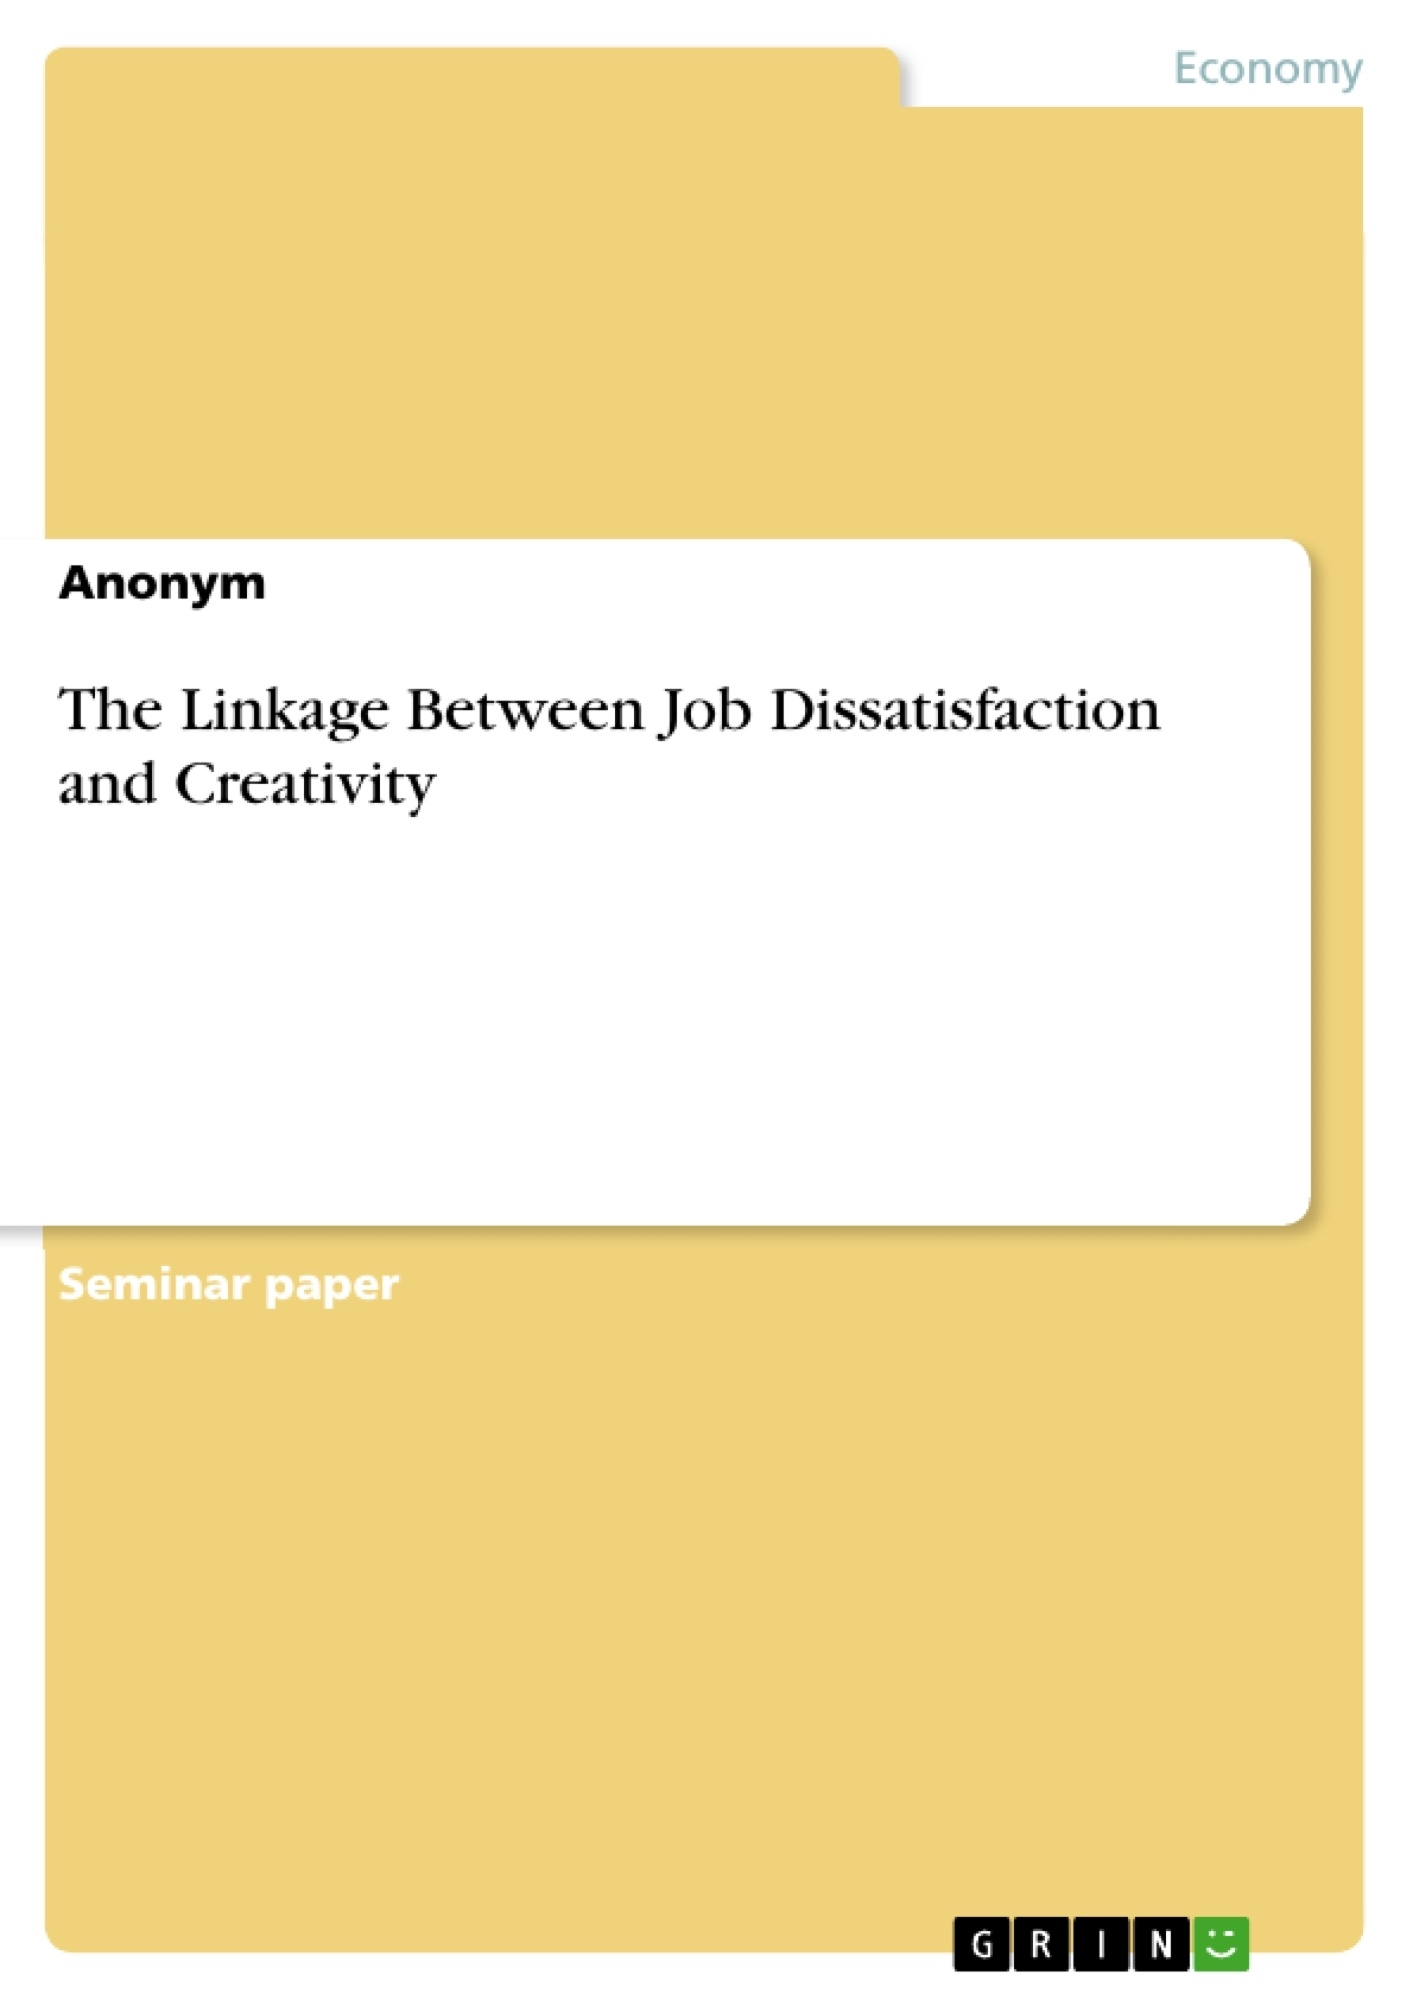 Title: The Linkage Between Job Dissatisfaction and Creativity